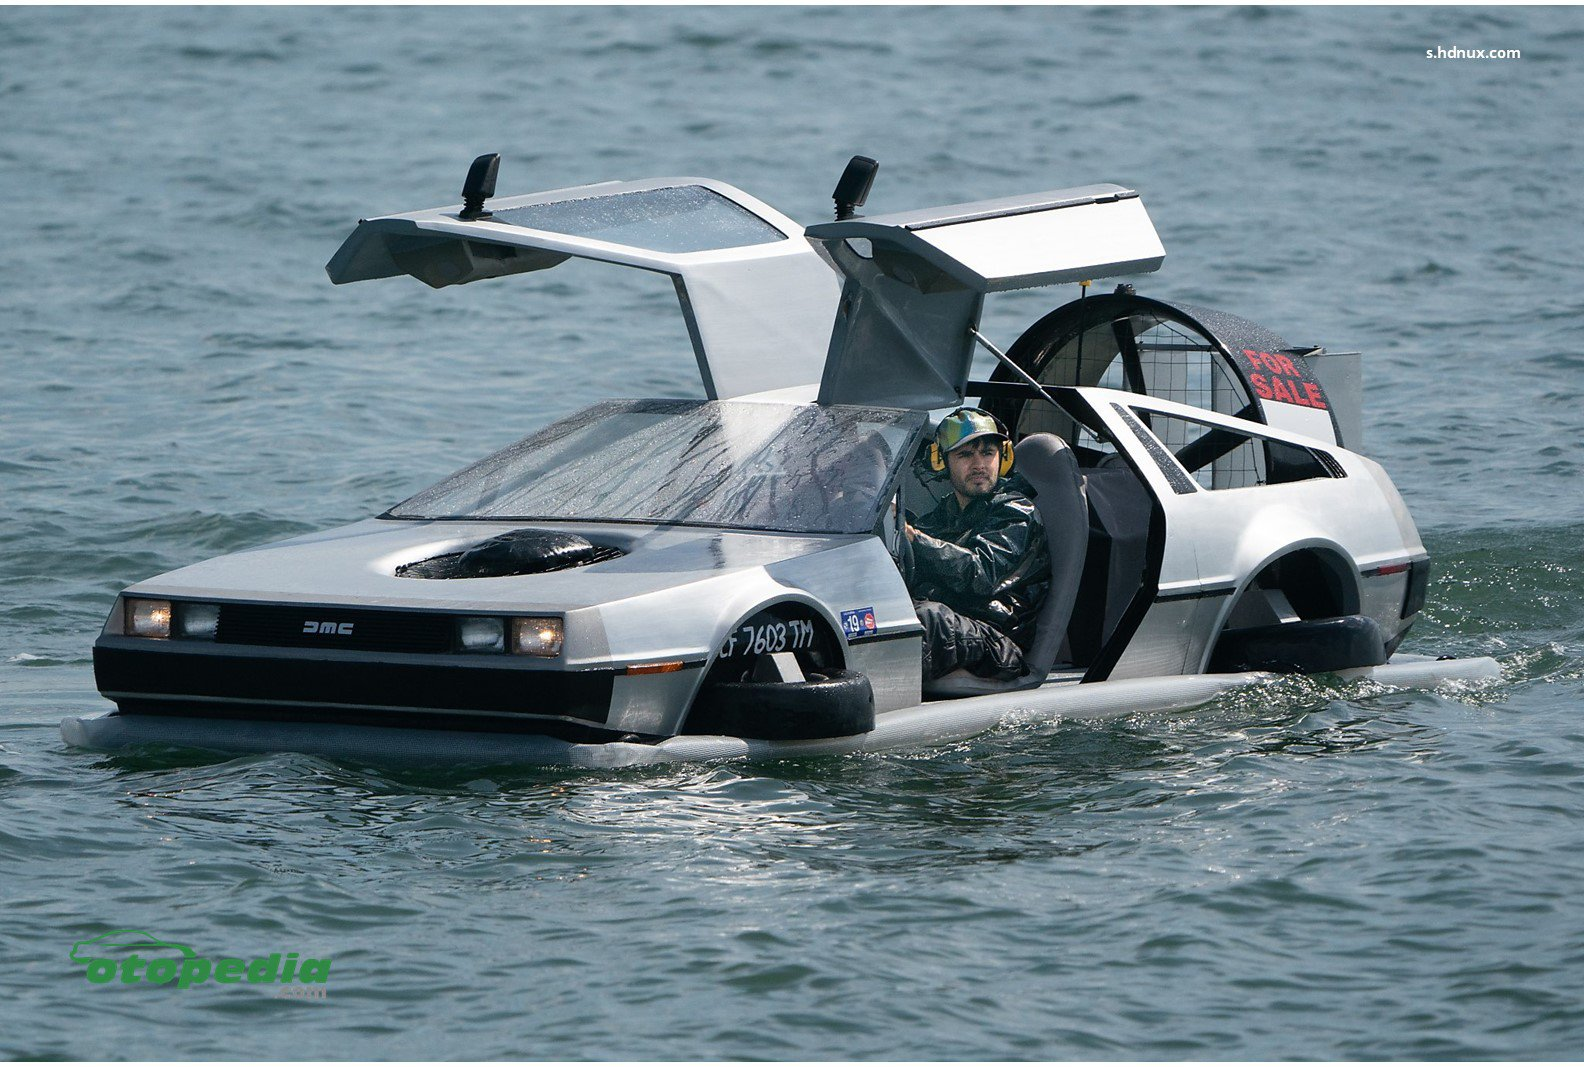 /media/images/DeLorean-Versi-Air.original.jpg